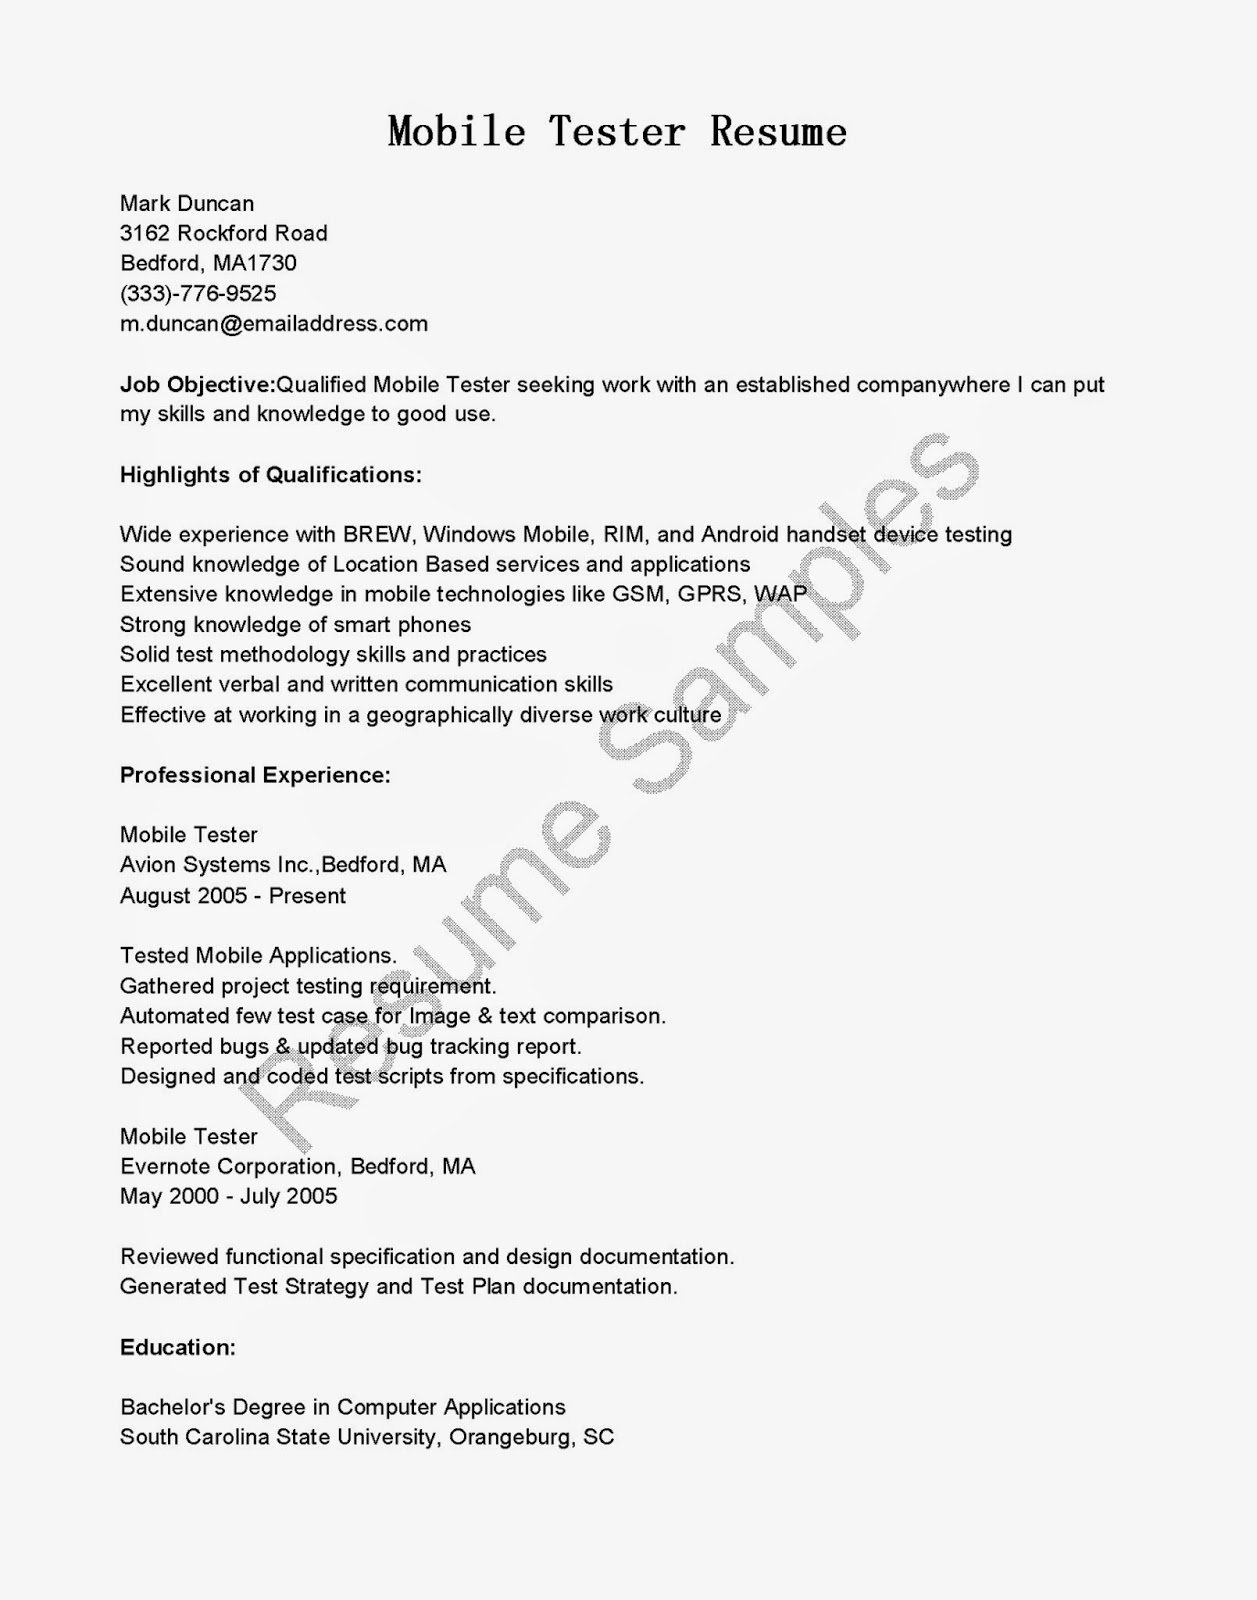 resume samples  mobile tester resume sample